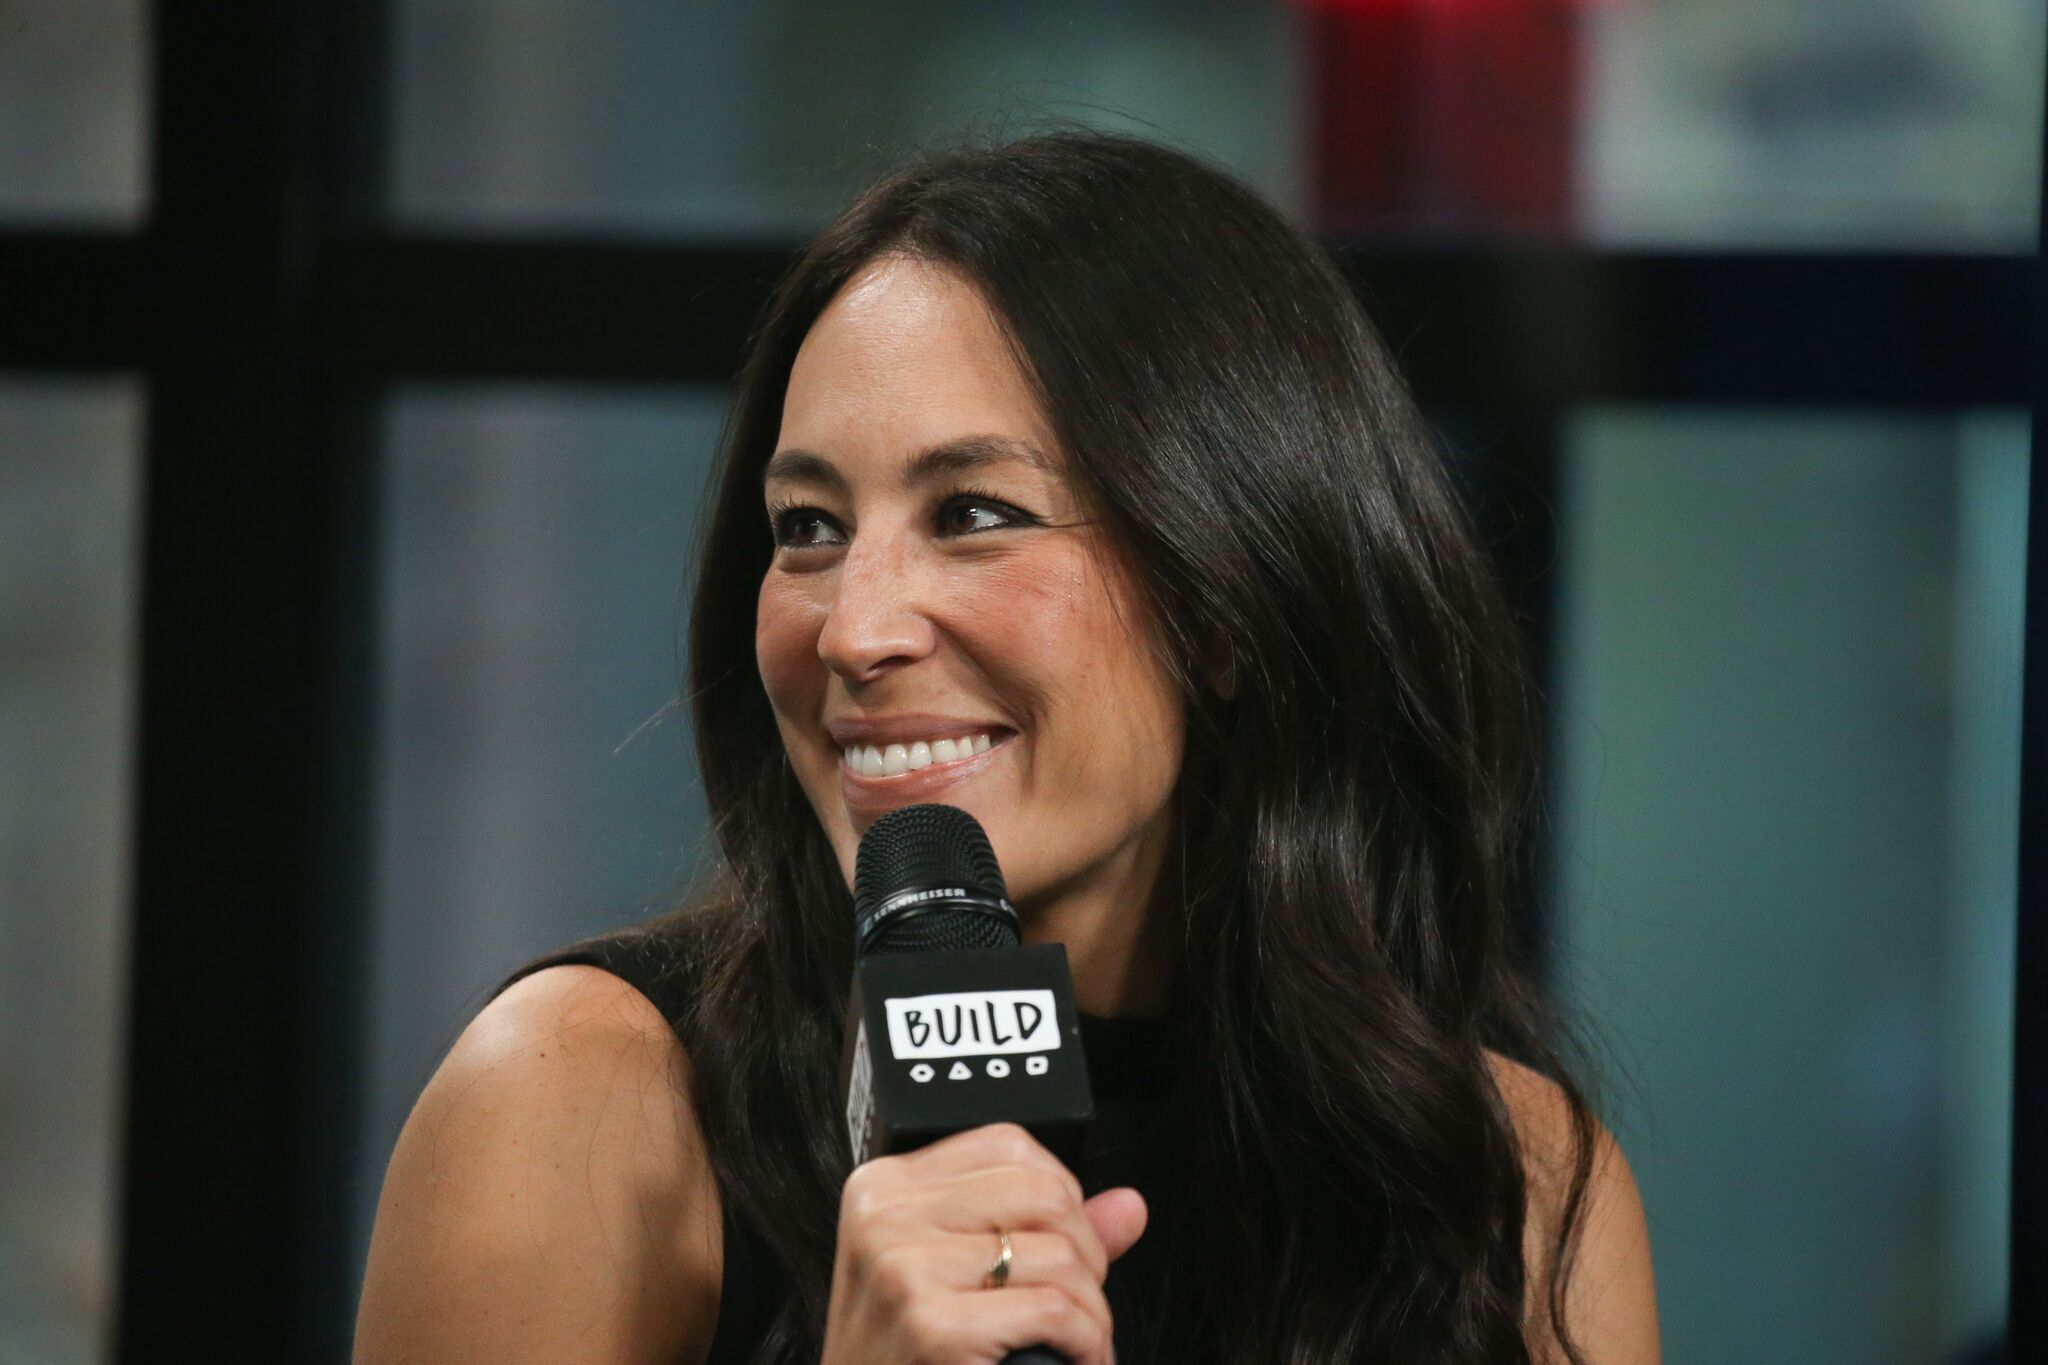 """Joanna Gaines discusses new book, """"Capital Gaines: Smart Things I Learned Doing Stupid Stuff"""" at Build Studio on October 18, 2017 